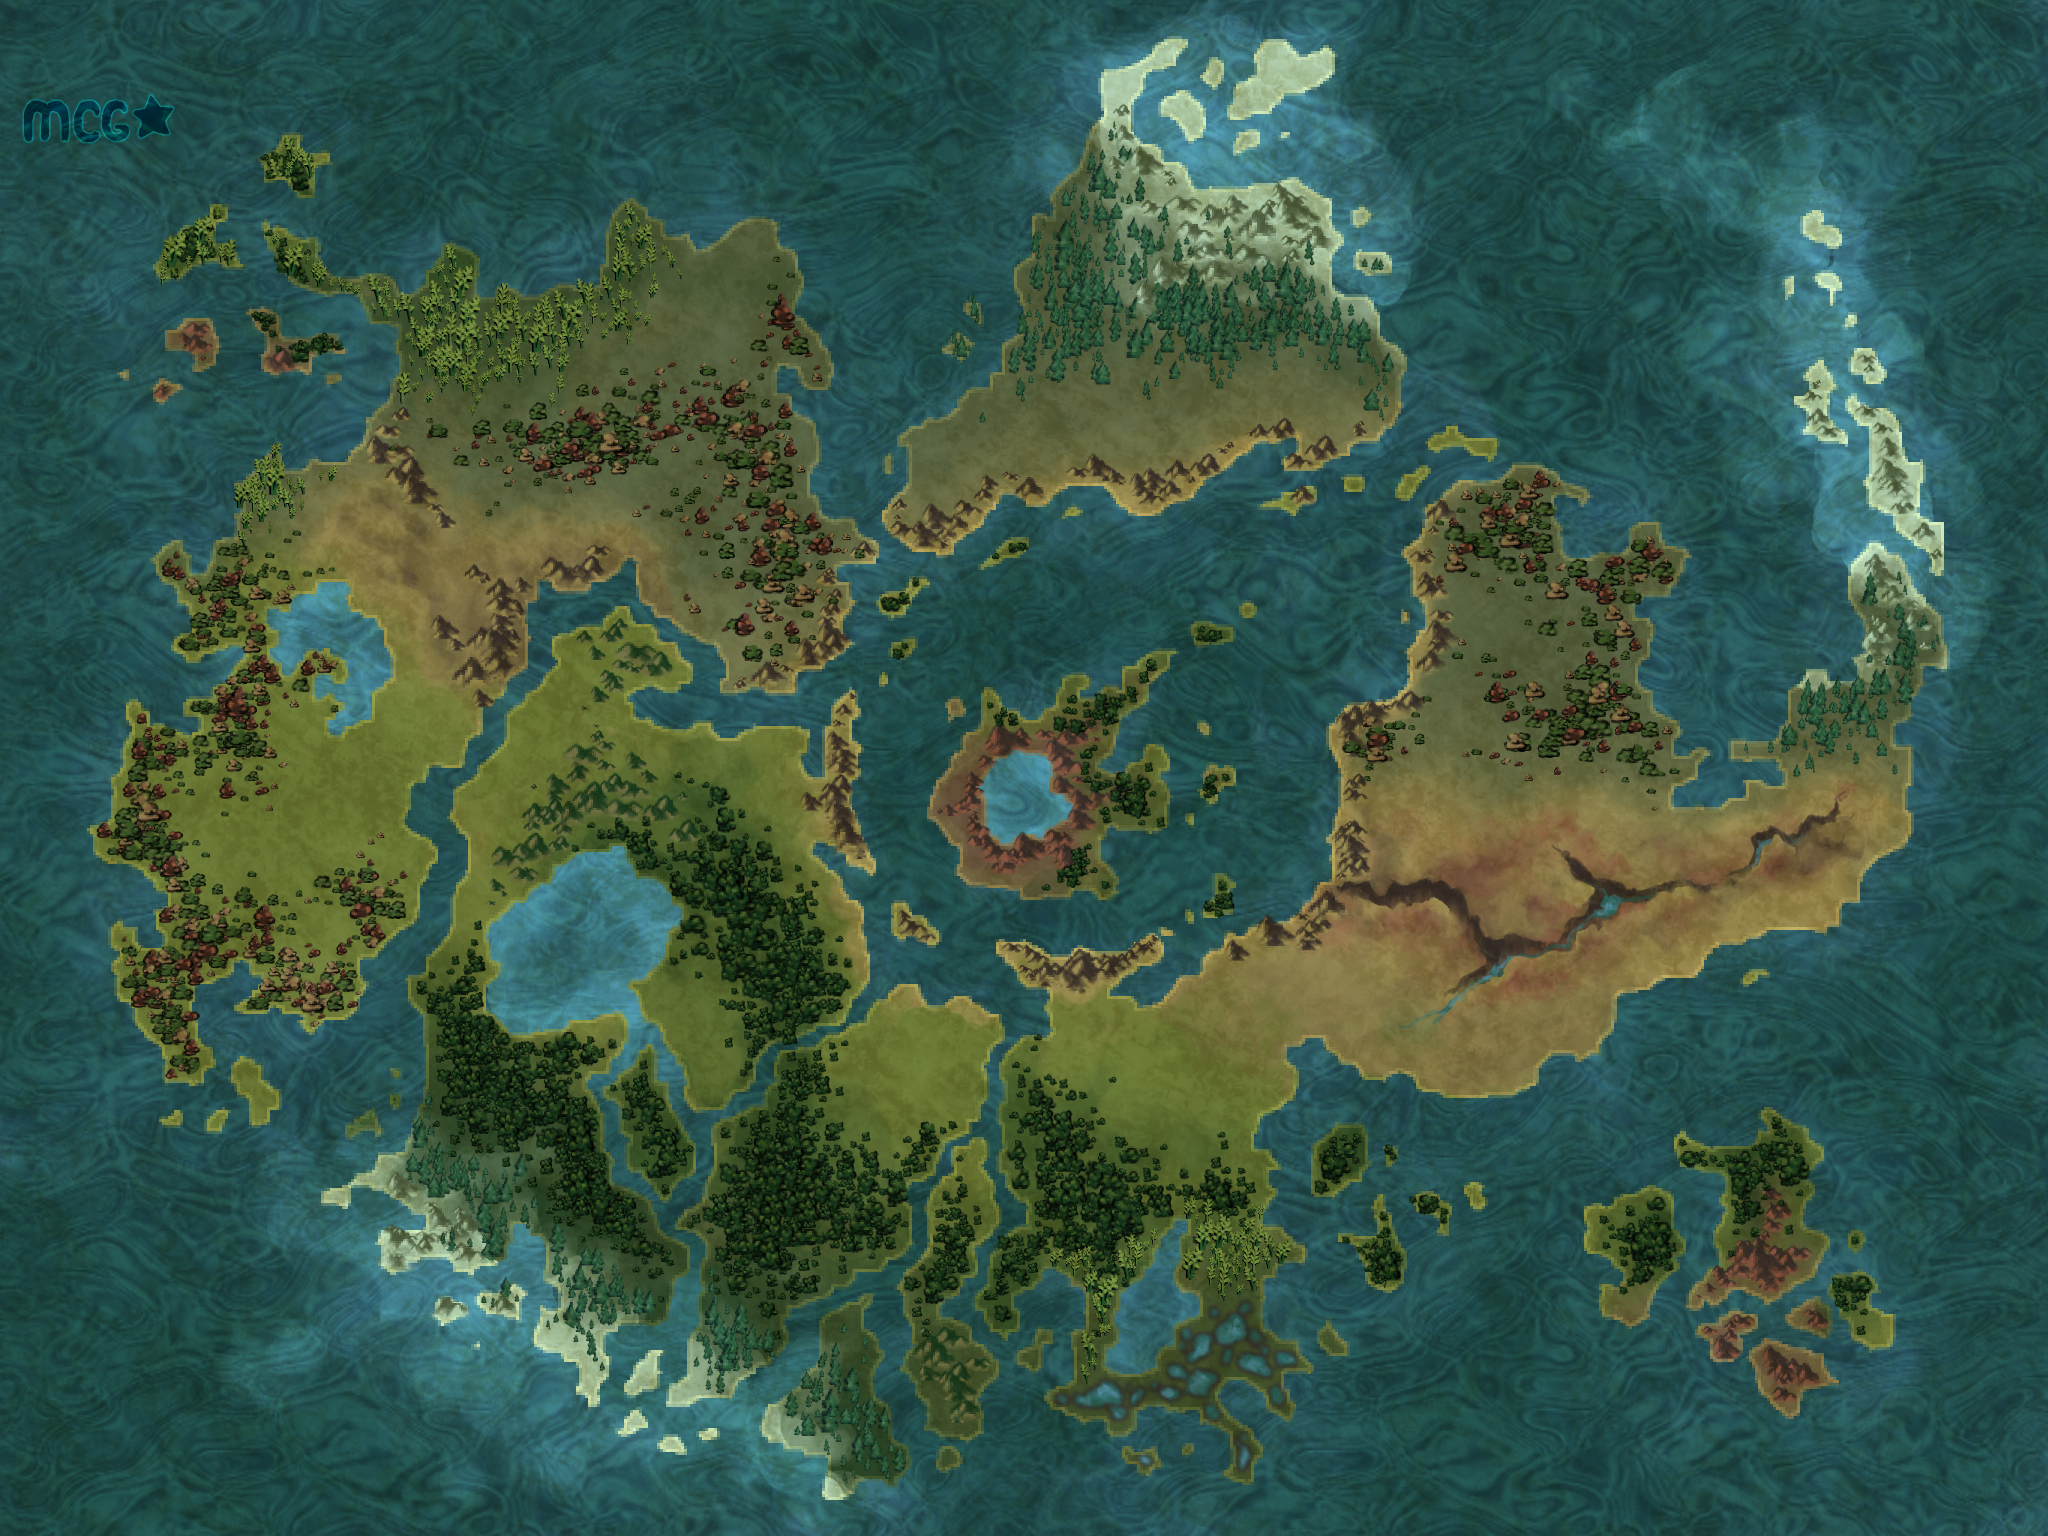 rioren_map__no_markers__by_monochromegoggles-dbzy4jr.png